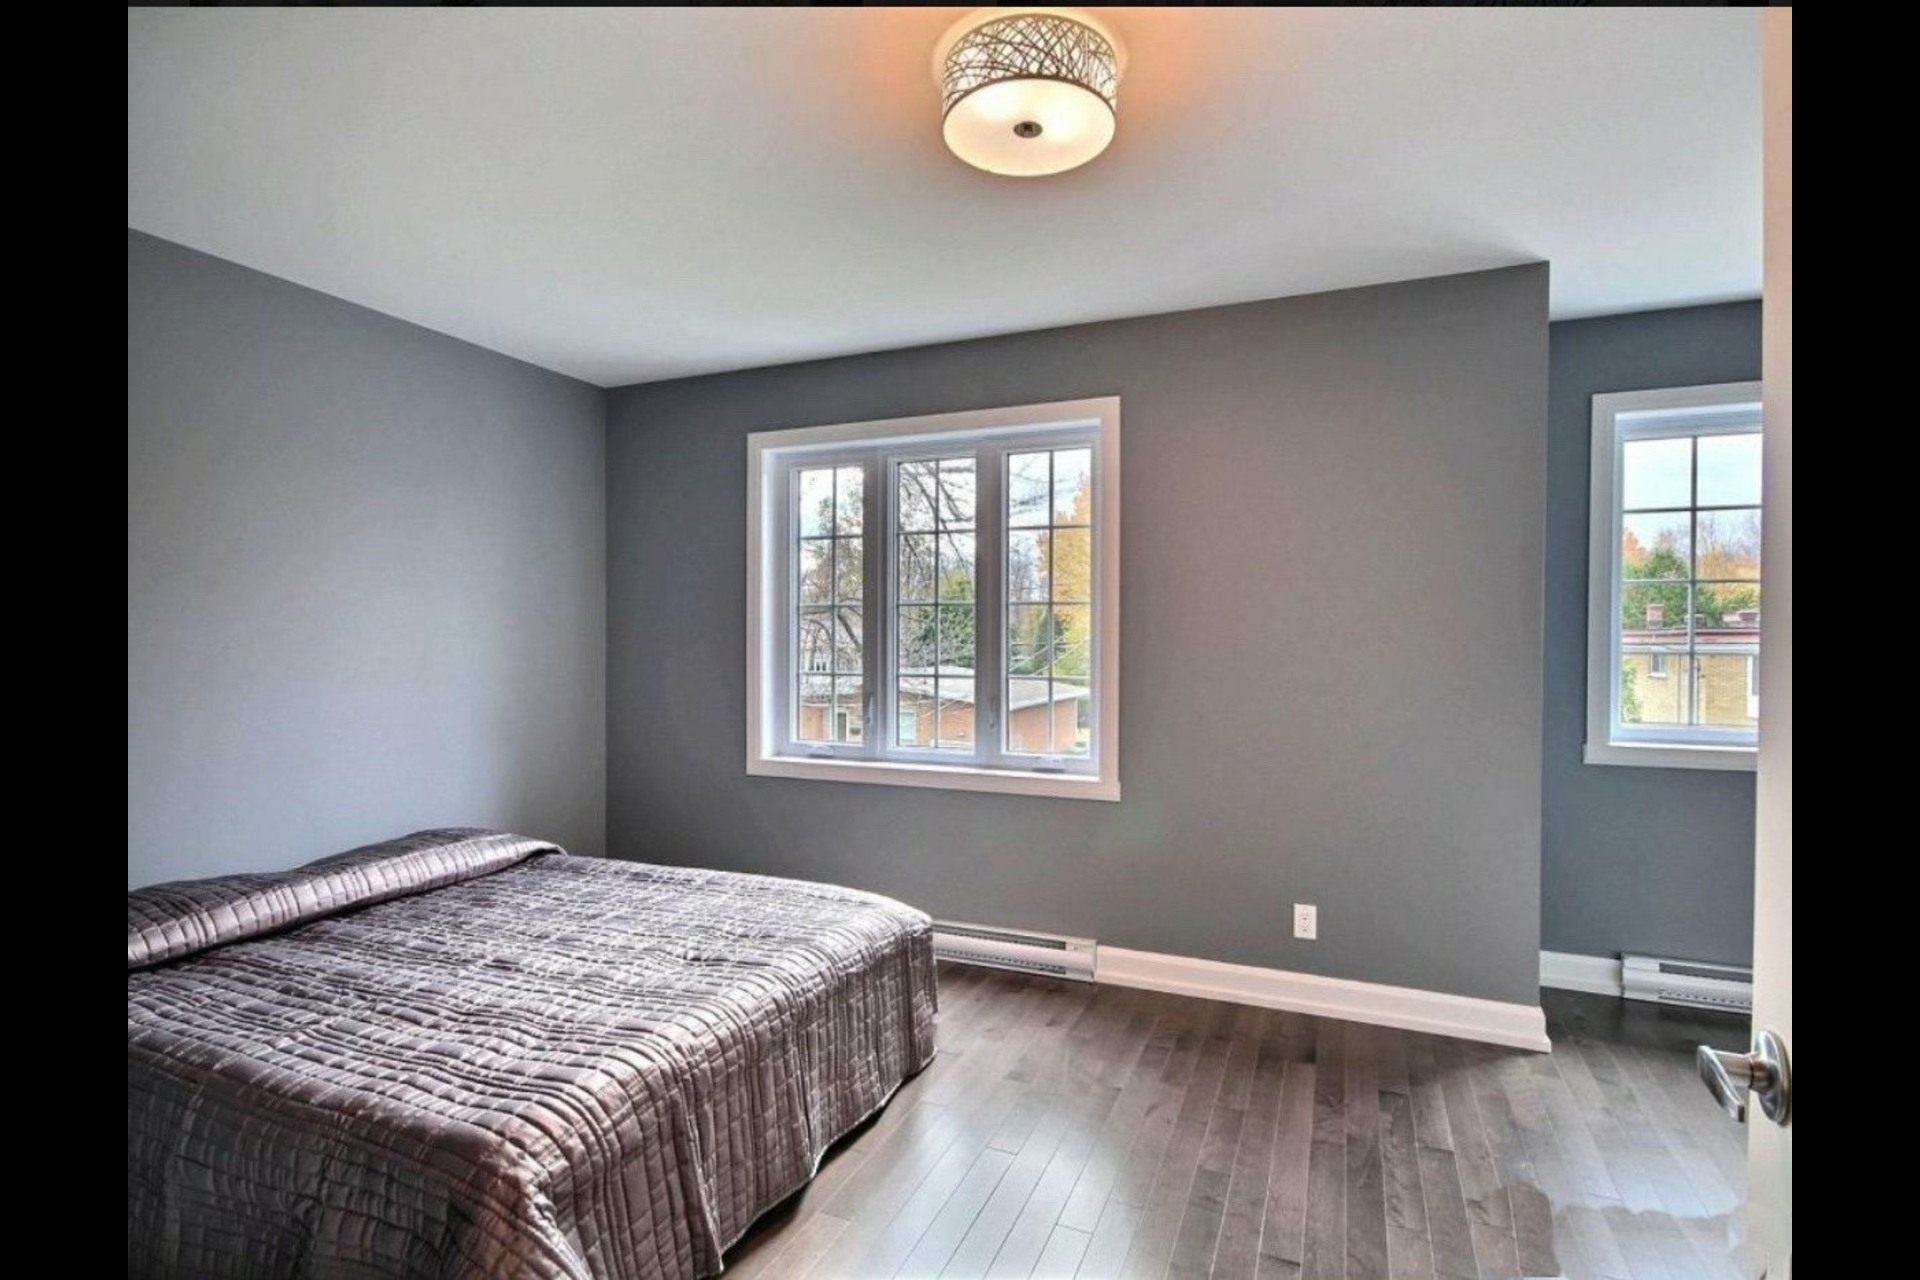 image 5 - House For sale Granby - 7 rooms